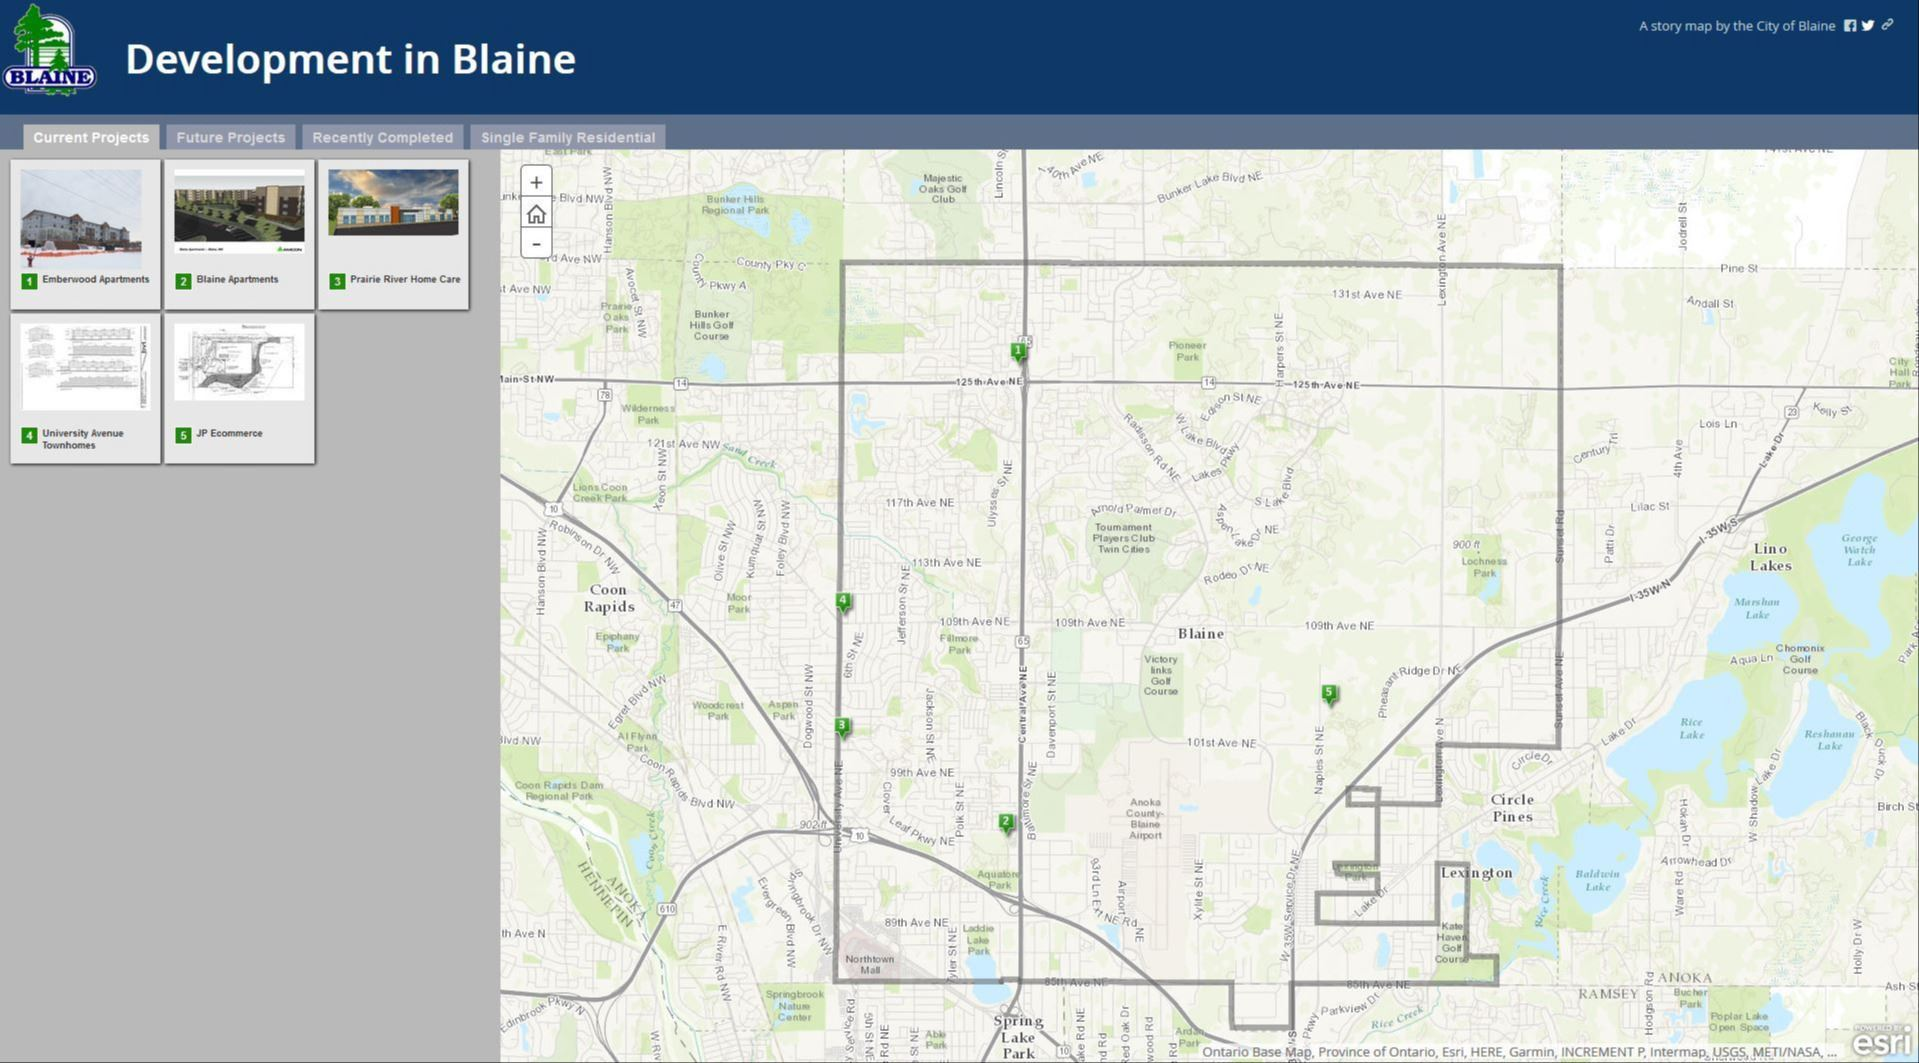 City of Blaine Development Web Map